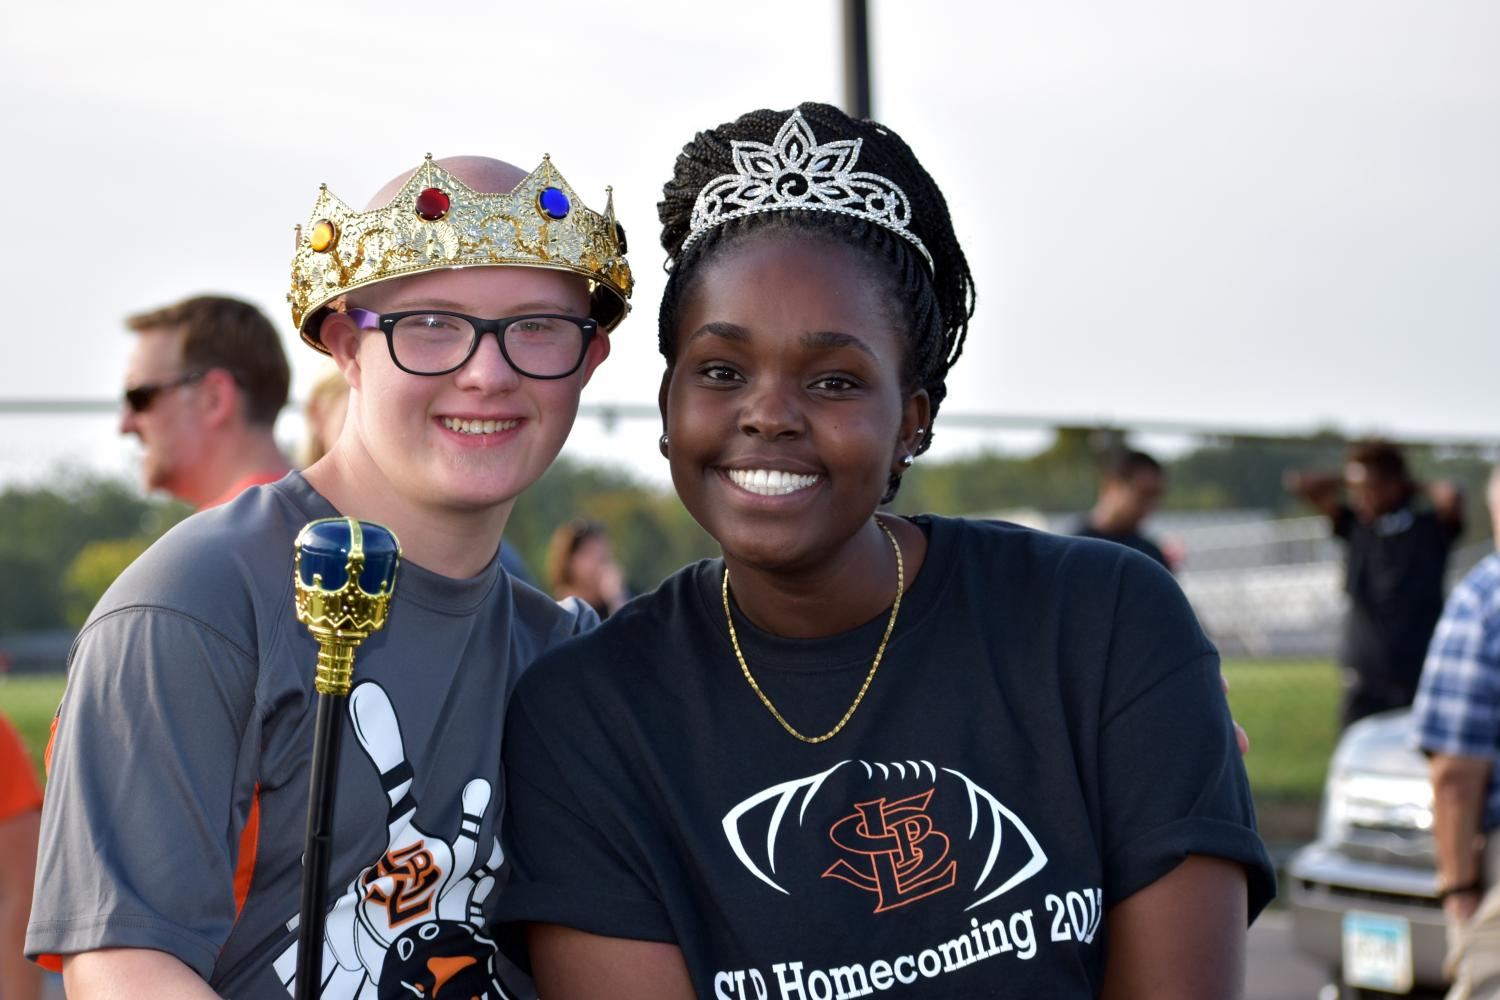 Homecoming+King+Terrance+O%27Brien+and+Queen+Doreen+Moranga+pose+while+getting+ready+for+the+homecoming+parade%2C+Sept.+15.+